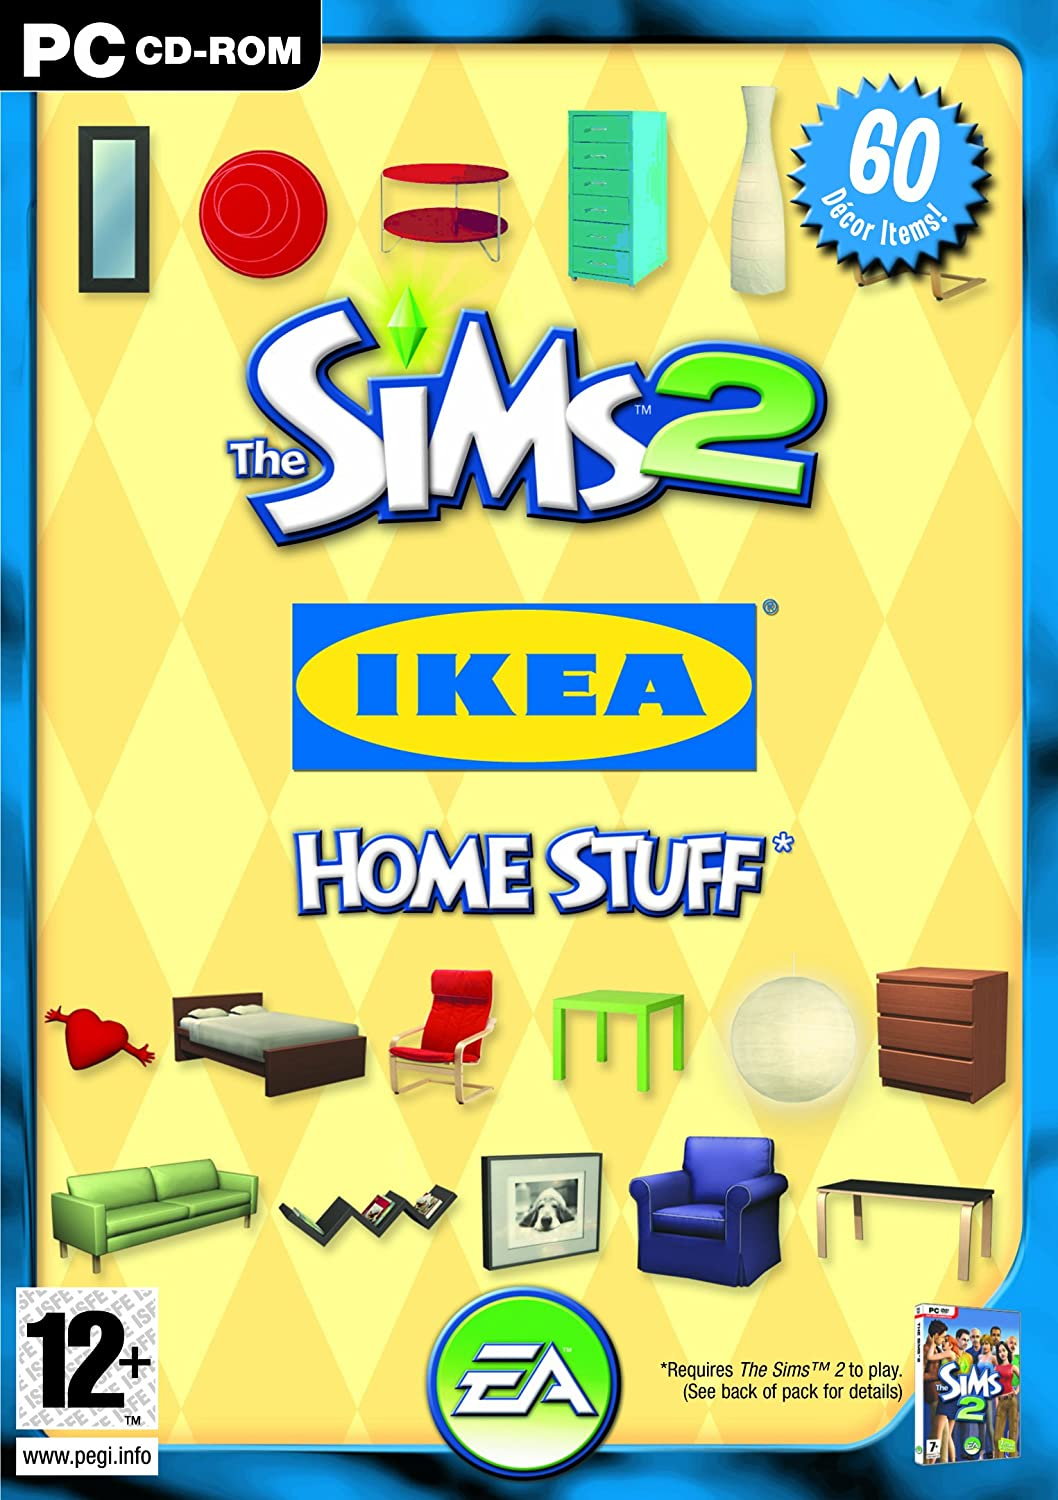 Uncategorized The Sims 2 Kitchen And Bath Interior Design the sims 2 ikea home stuff pc cd amazon co uk video games